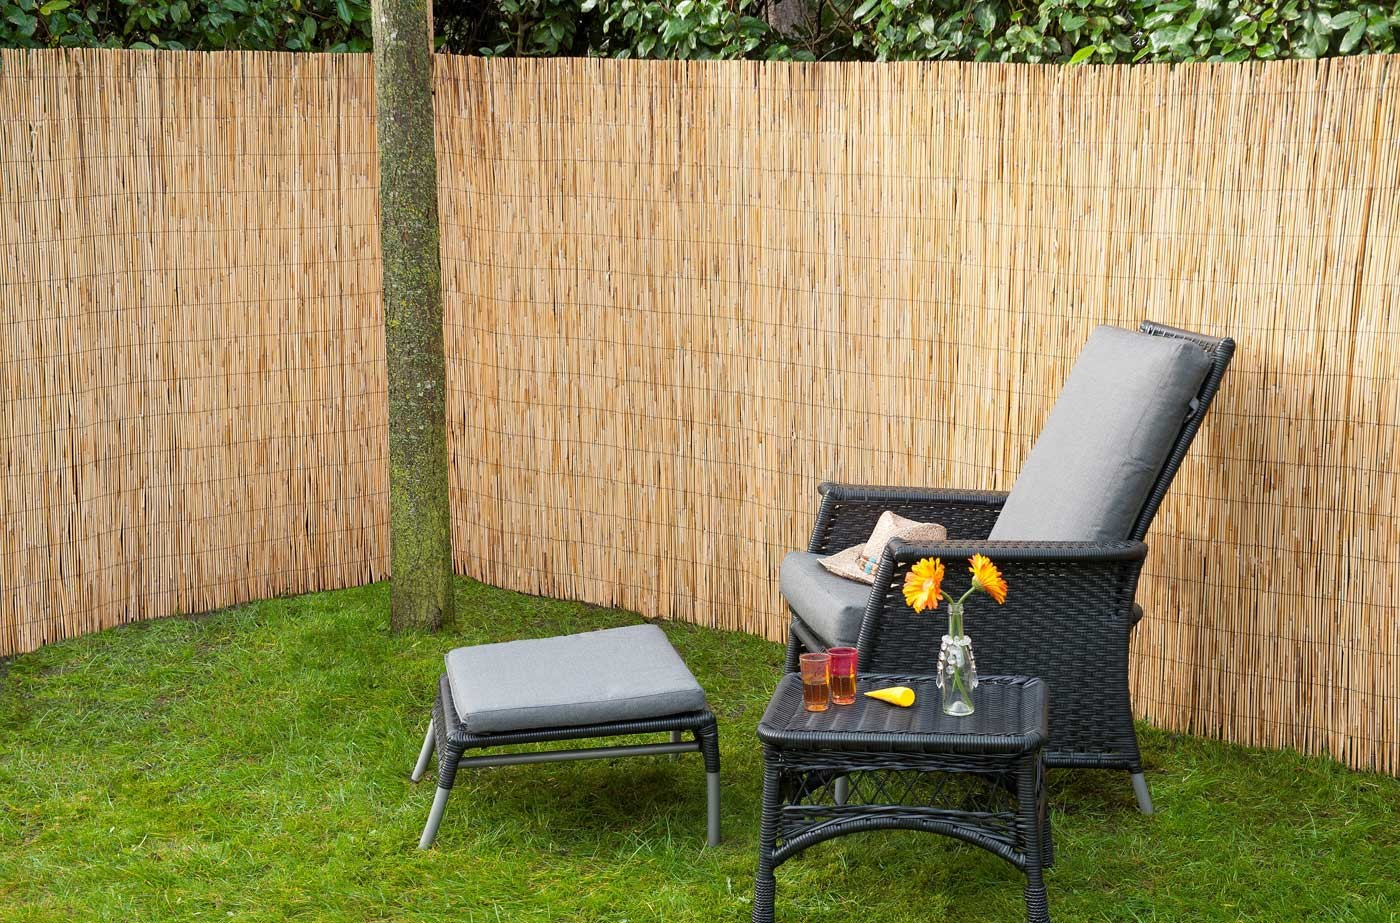 canisse naturelle en roseaux 1x5m pour jardin piscine balcon terrasse. Black Bedroom Furniture Sets. Home Design Ideas